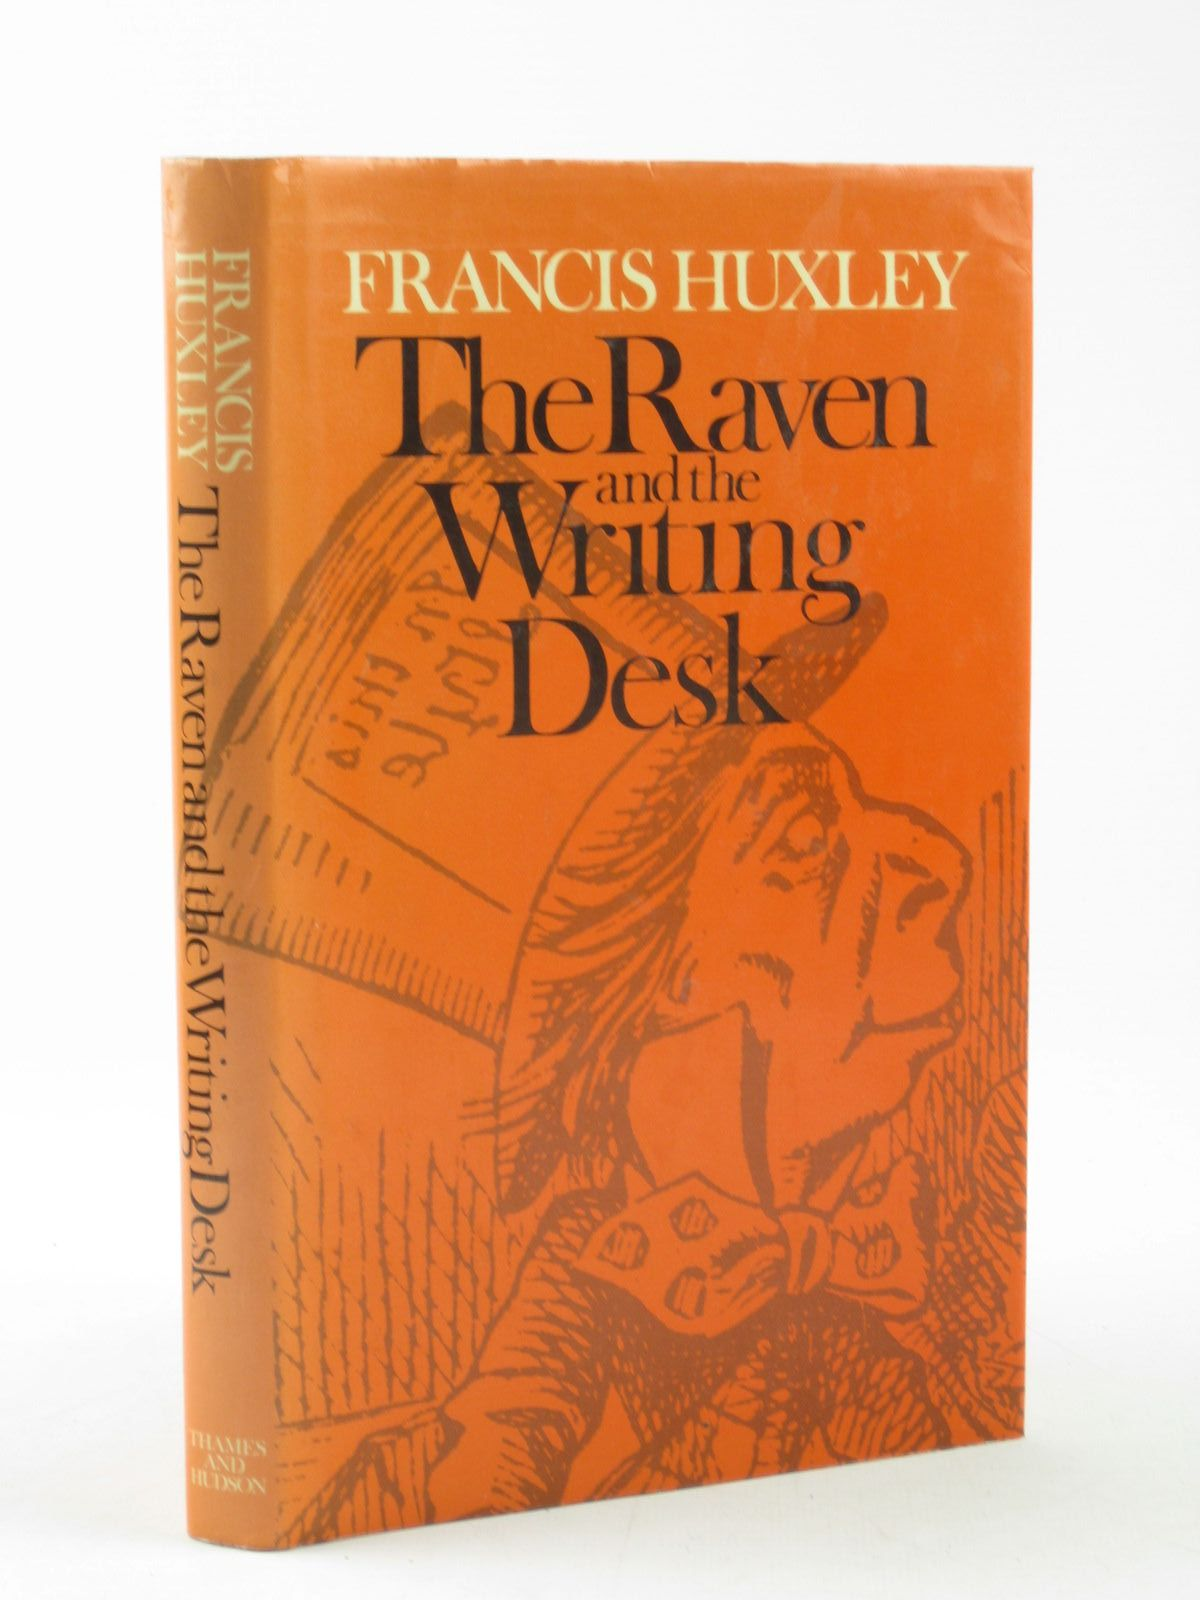 Photo of THE RAVEN AND THE WRITING DESK written by Carroll, Lewis<br />Huxley, Francis published by Thames and Hudson (STOCK CODE: 1311722)  for sale by Stella & Rose's Books